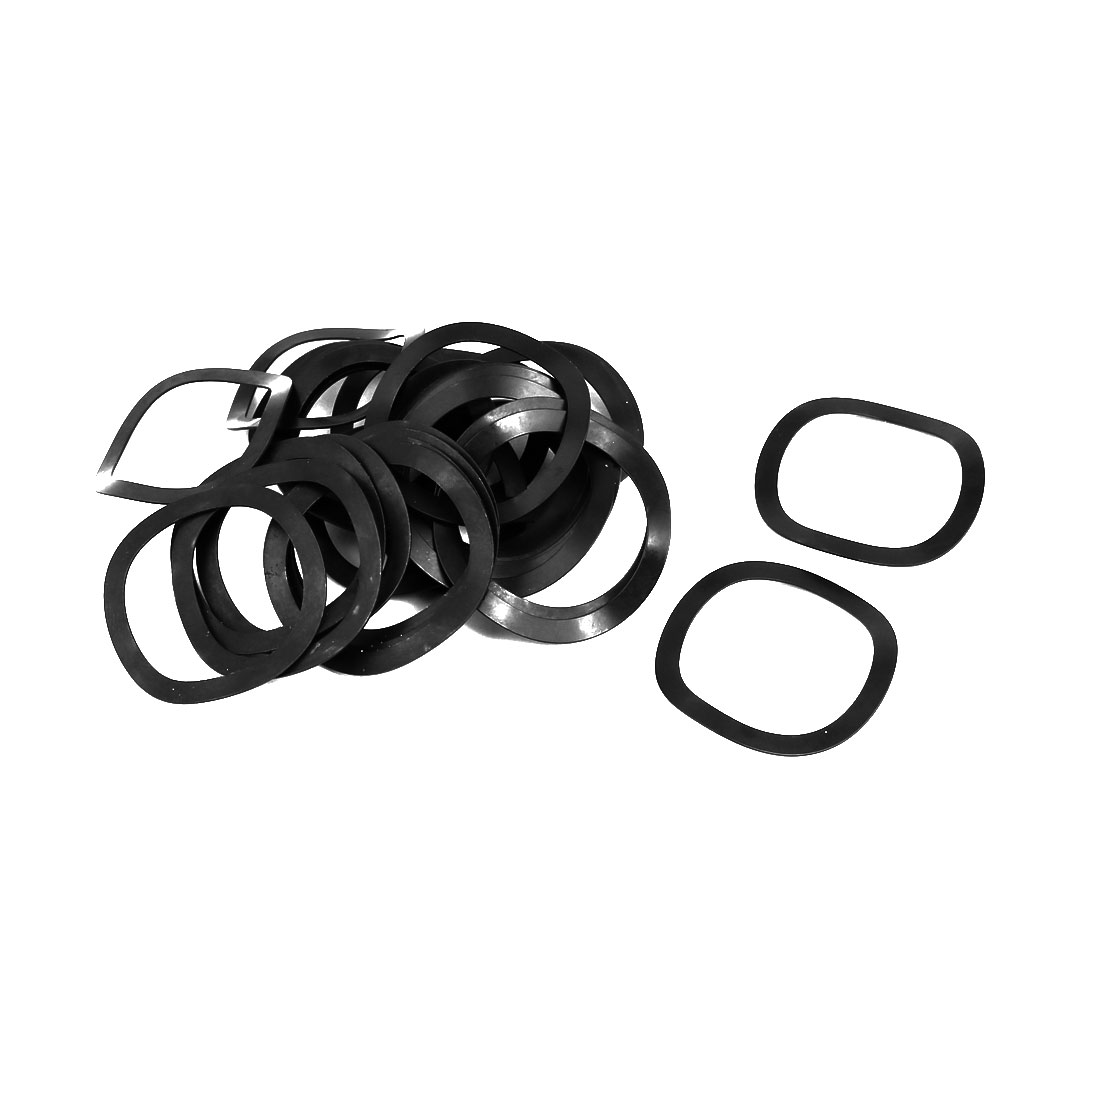 25mm Inner Dia 31mm Outer Dia 0.4mm Thickness Compression Type Wave Washer 40pcs